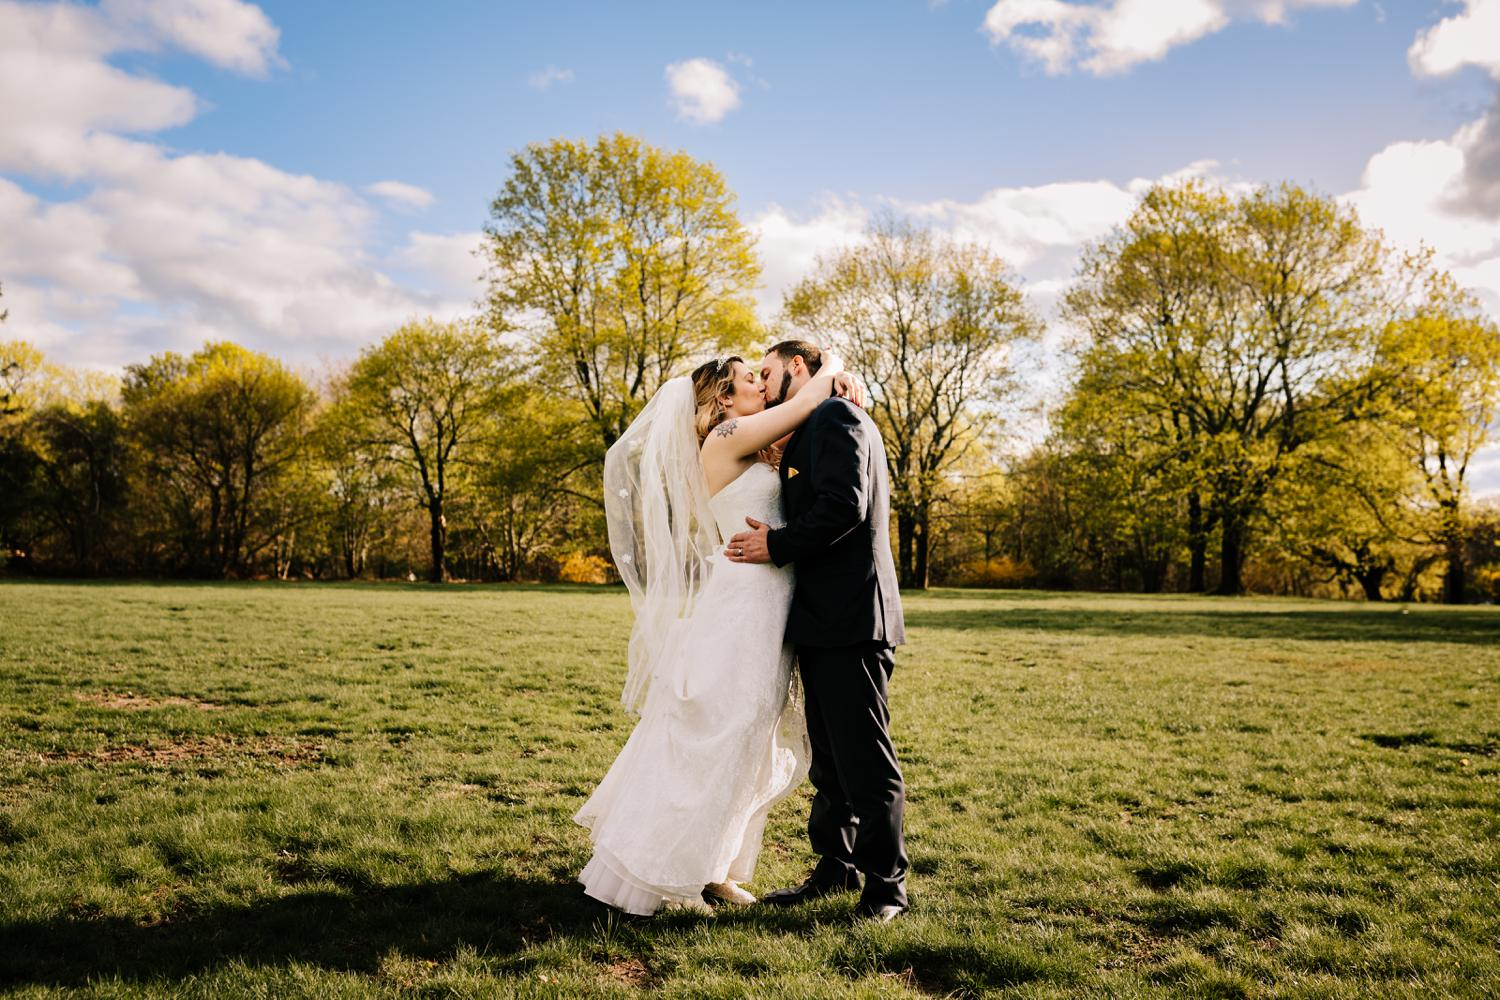 Tattooed bride and groom kissing at noon in field